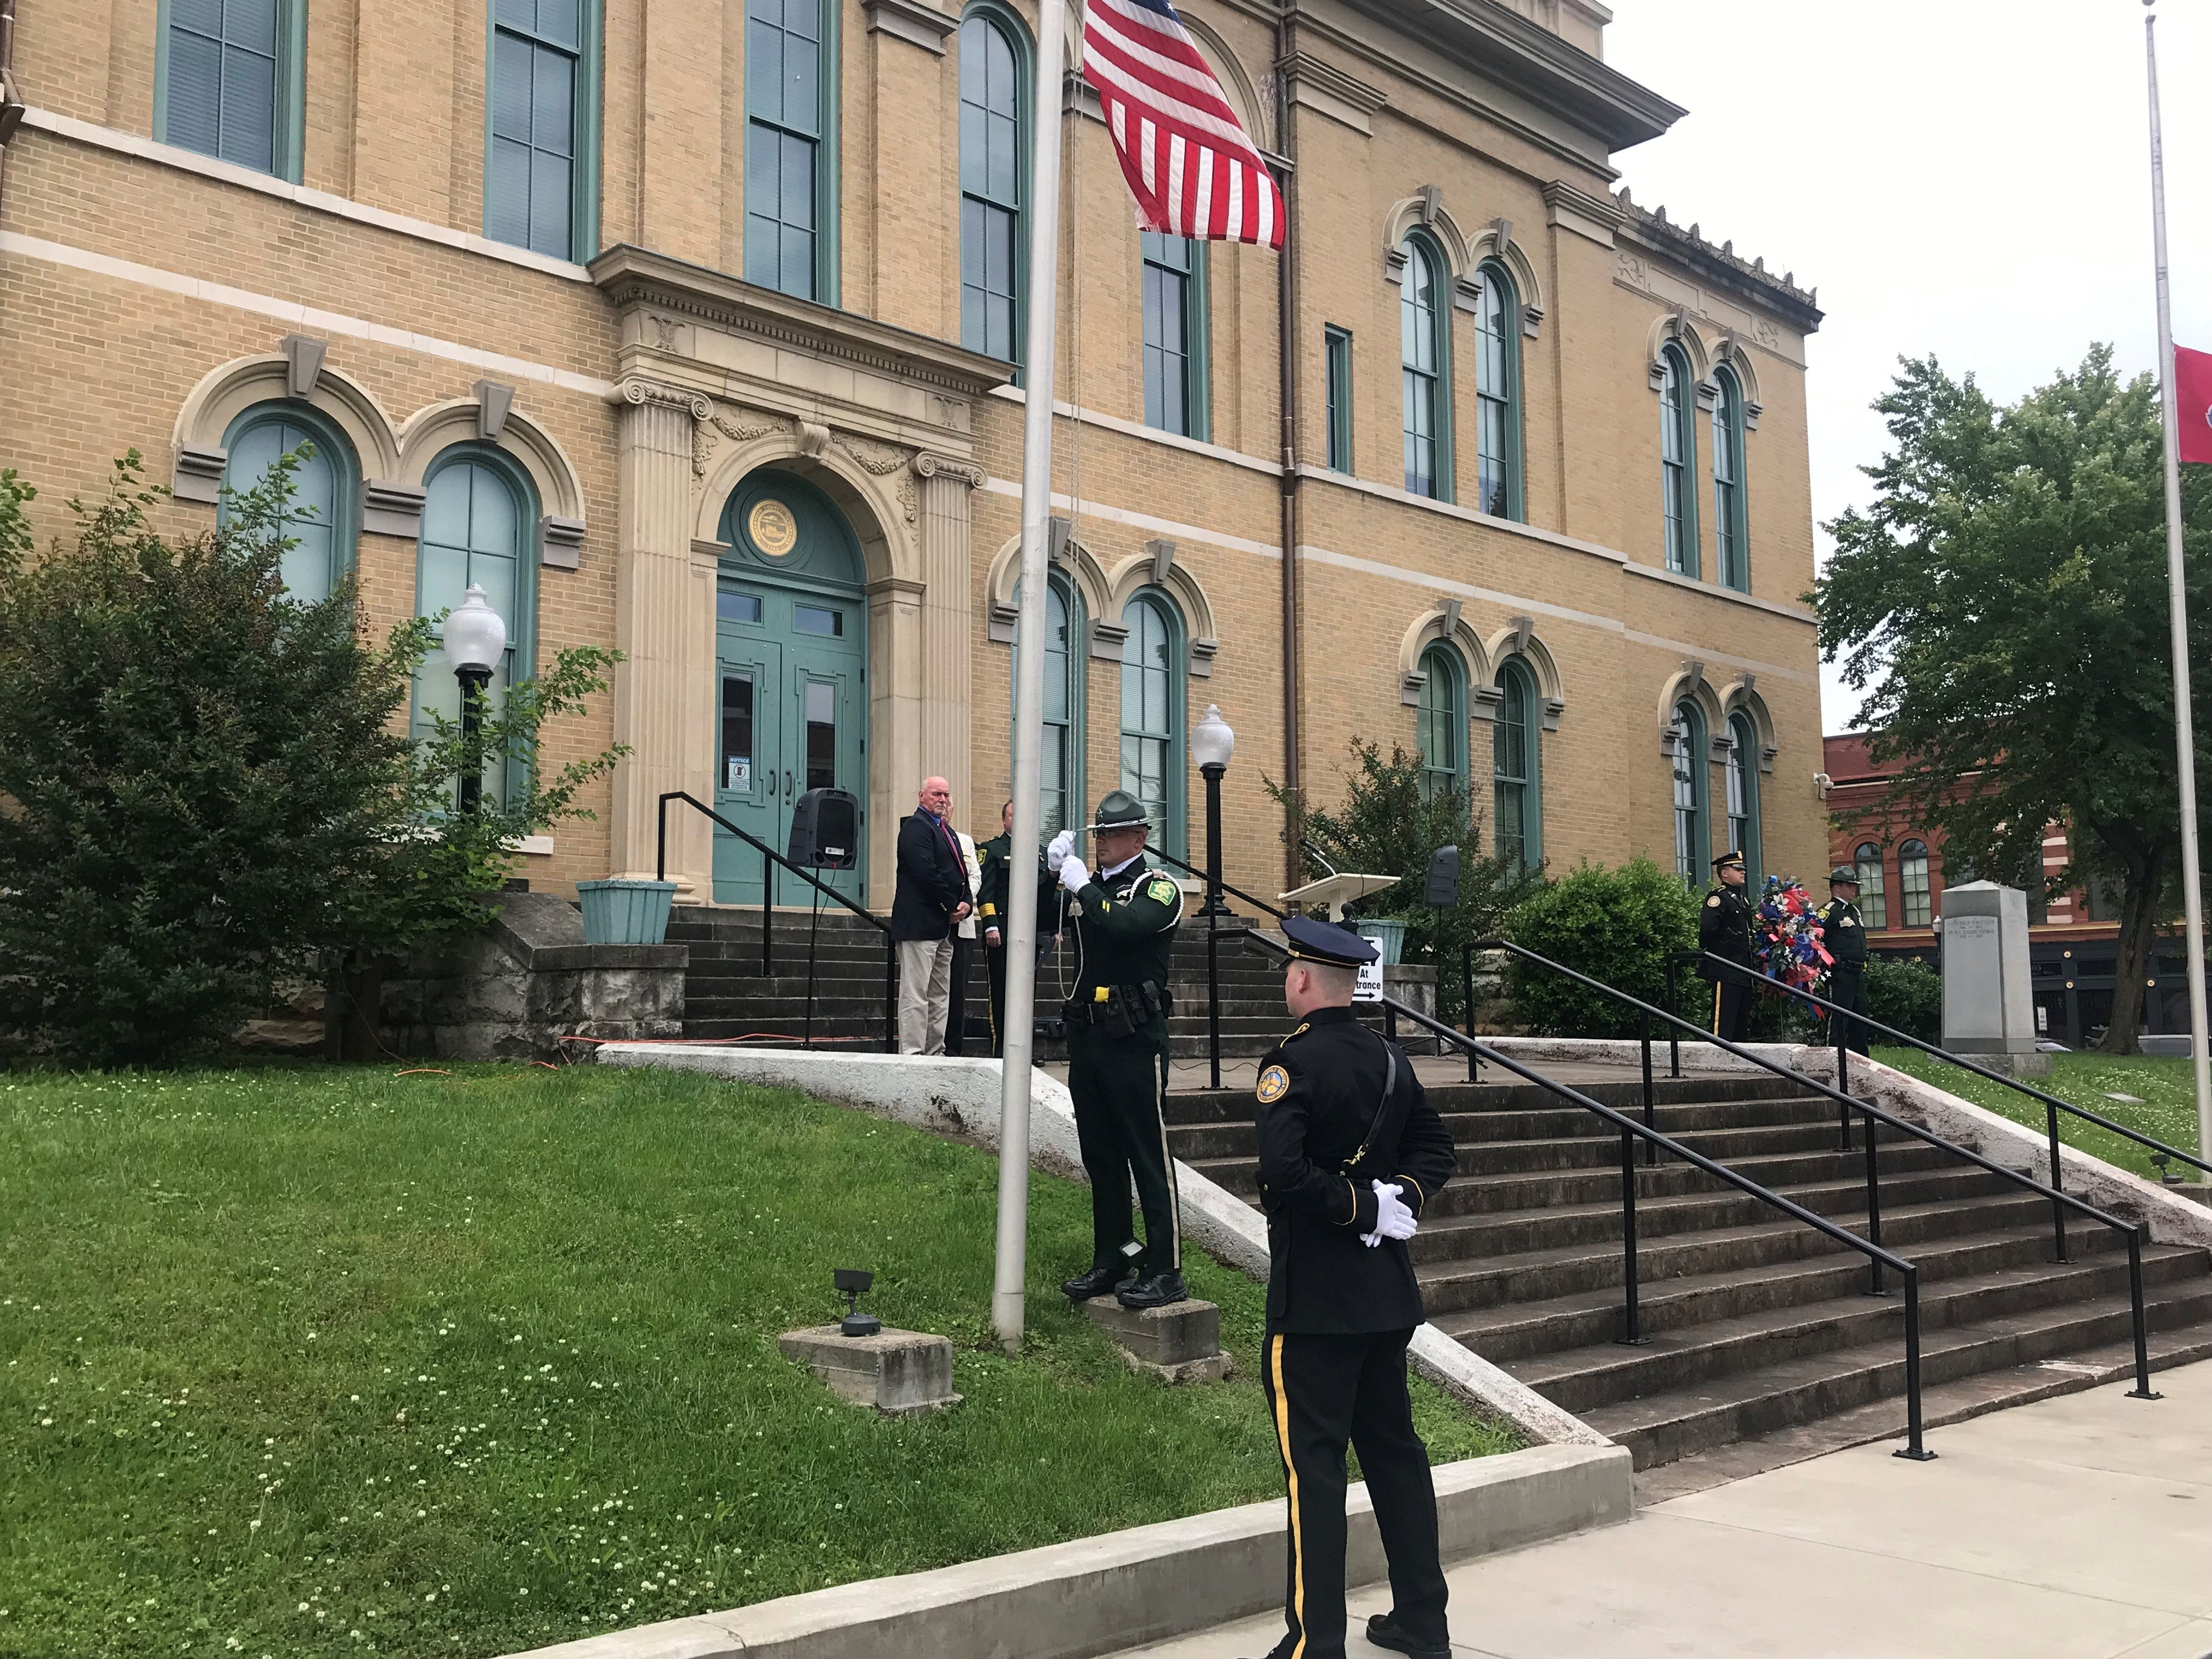 Robertson County's annual law enforcement memorial ceremony, coinciding with National Police Week, was held on Wednesday, May 15.